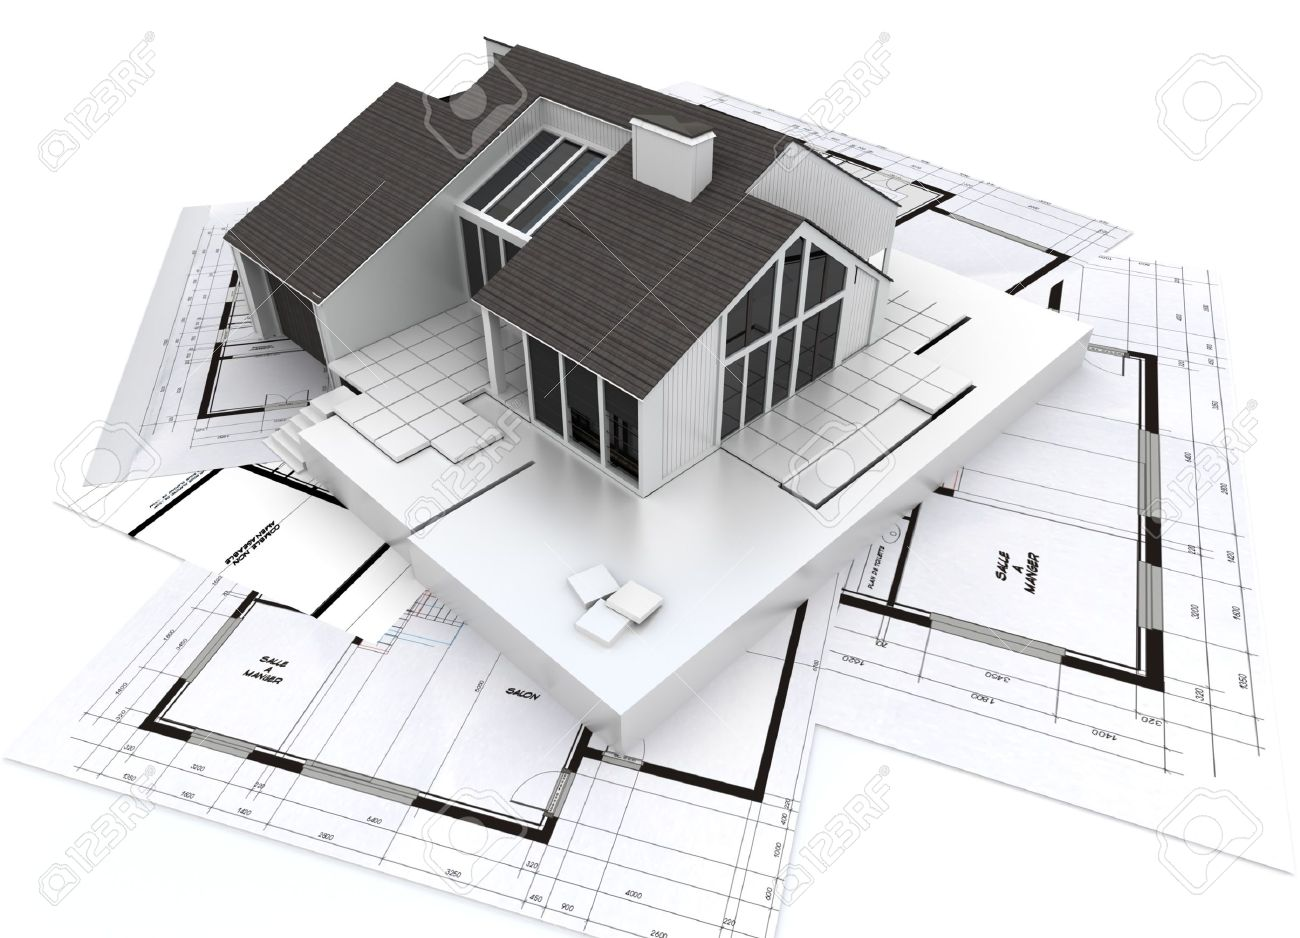 architecture blueprints 3d. 3D Rendering Of A Residential Architecture Model On Top Blueprints Stock Photo - 9548740 3d S